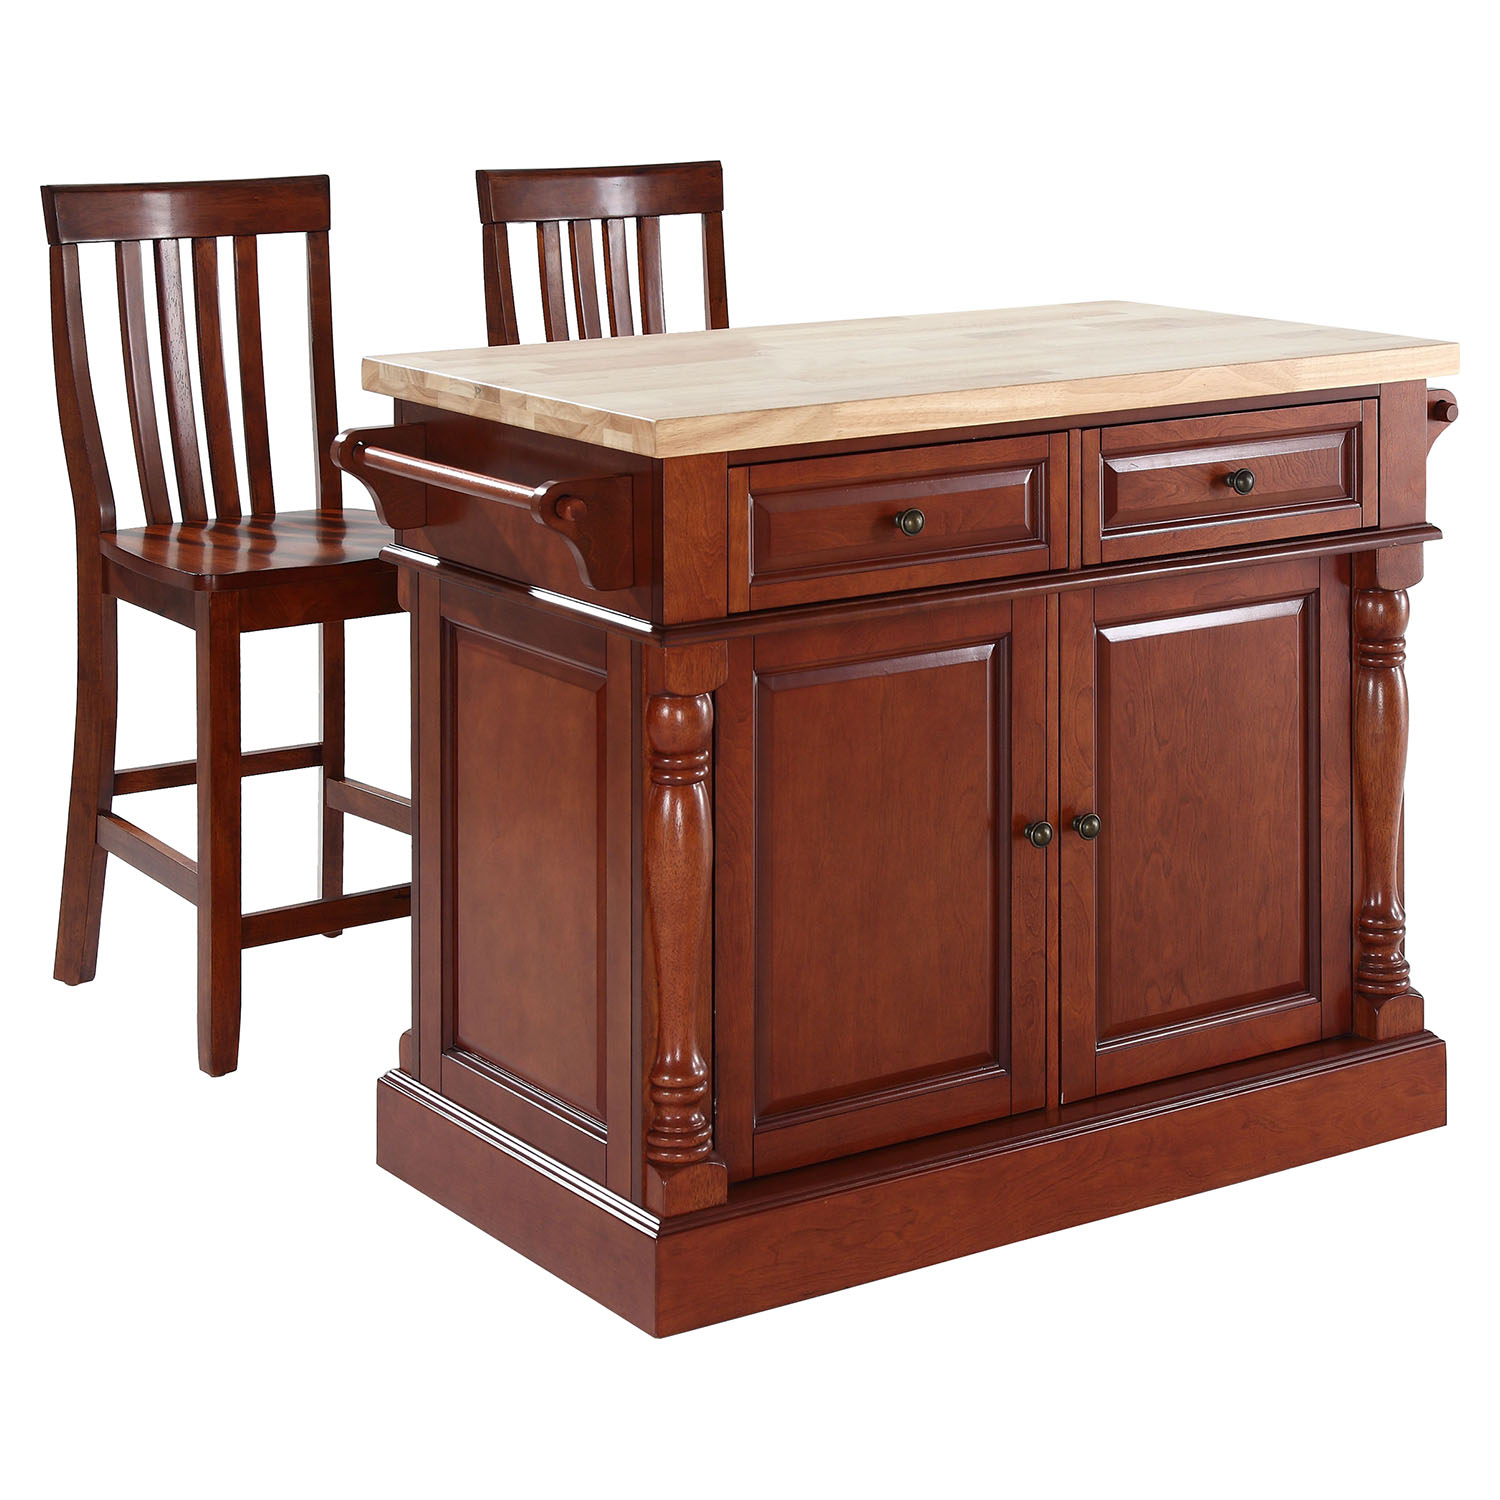 Butcher Block Top Kitchen Island With House Stools